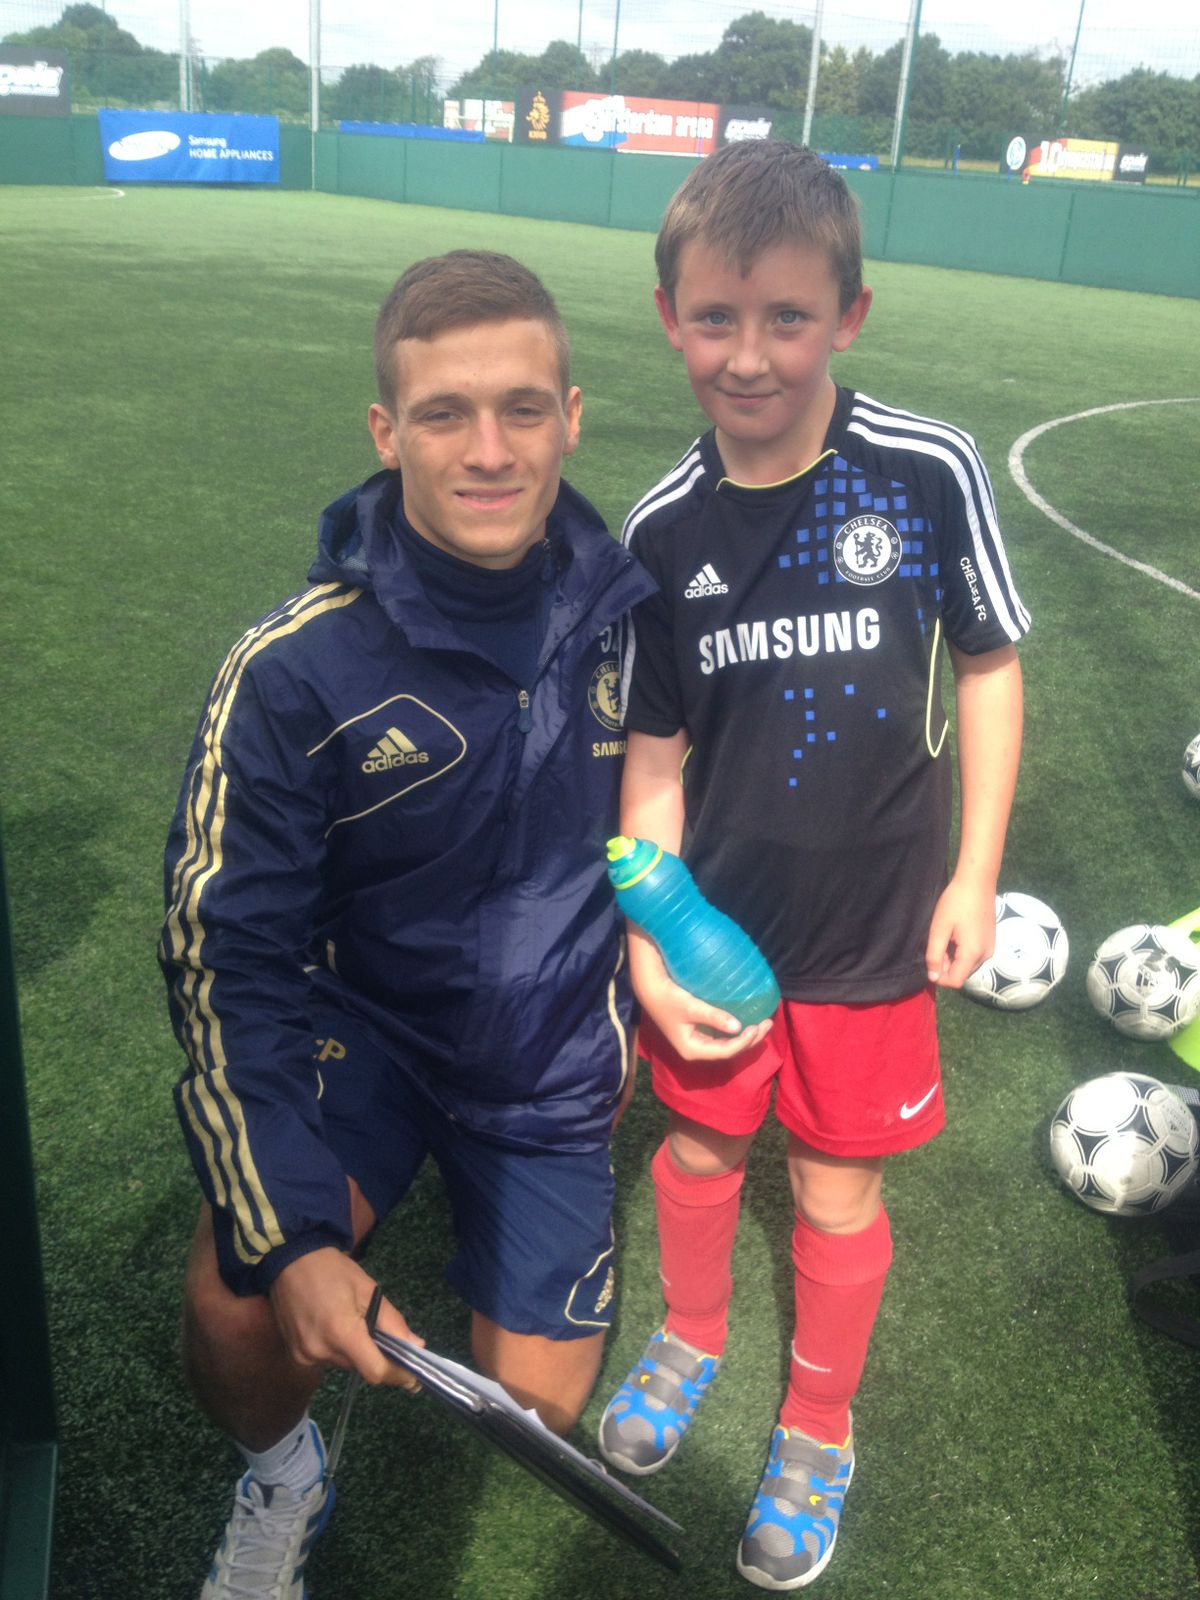 Mr Pick living his dream with Chelsea and Samsung #autism